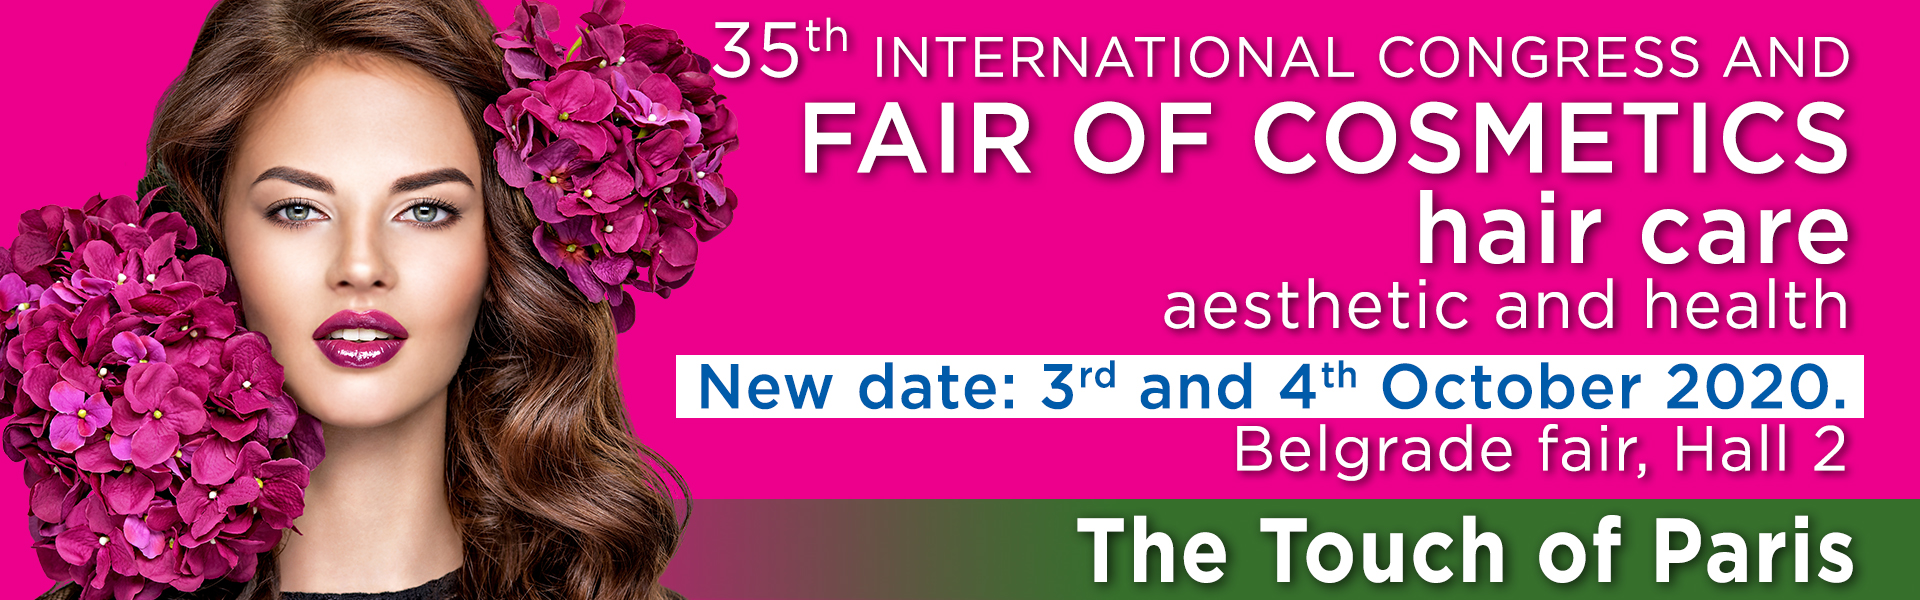 International fair and congress of cosmetics, hair care, aesthetics, health, wellness and fitness, The touch of Paris